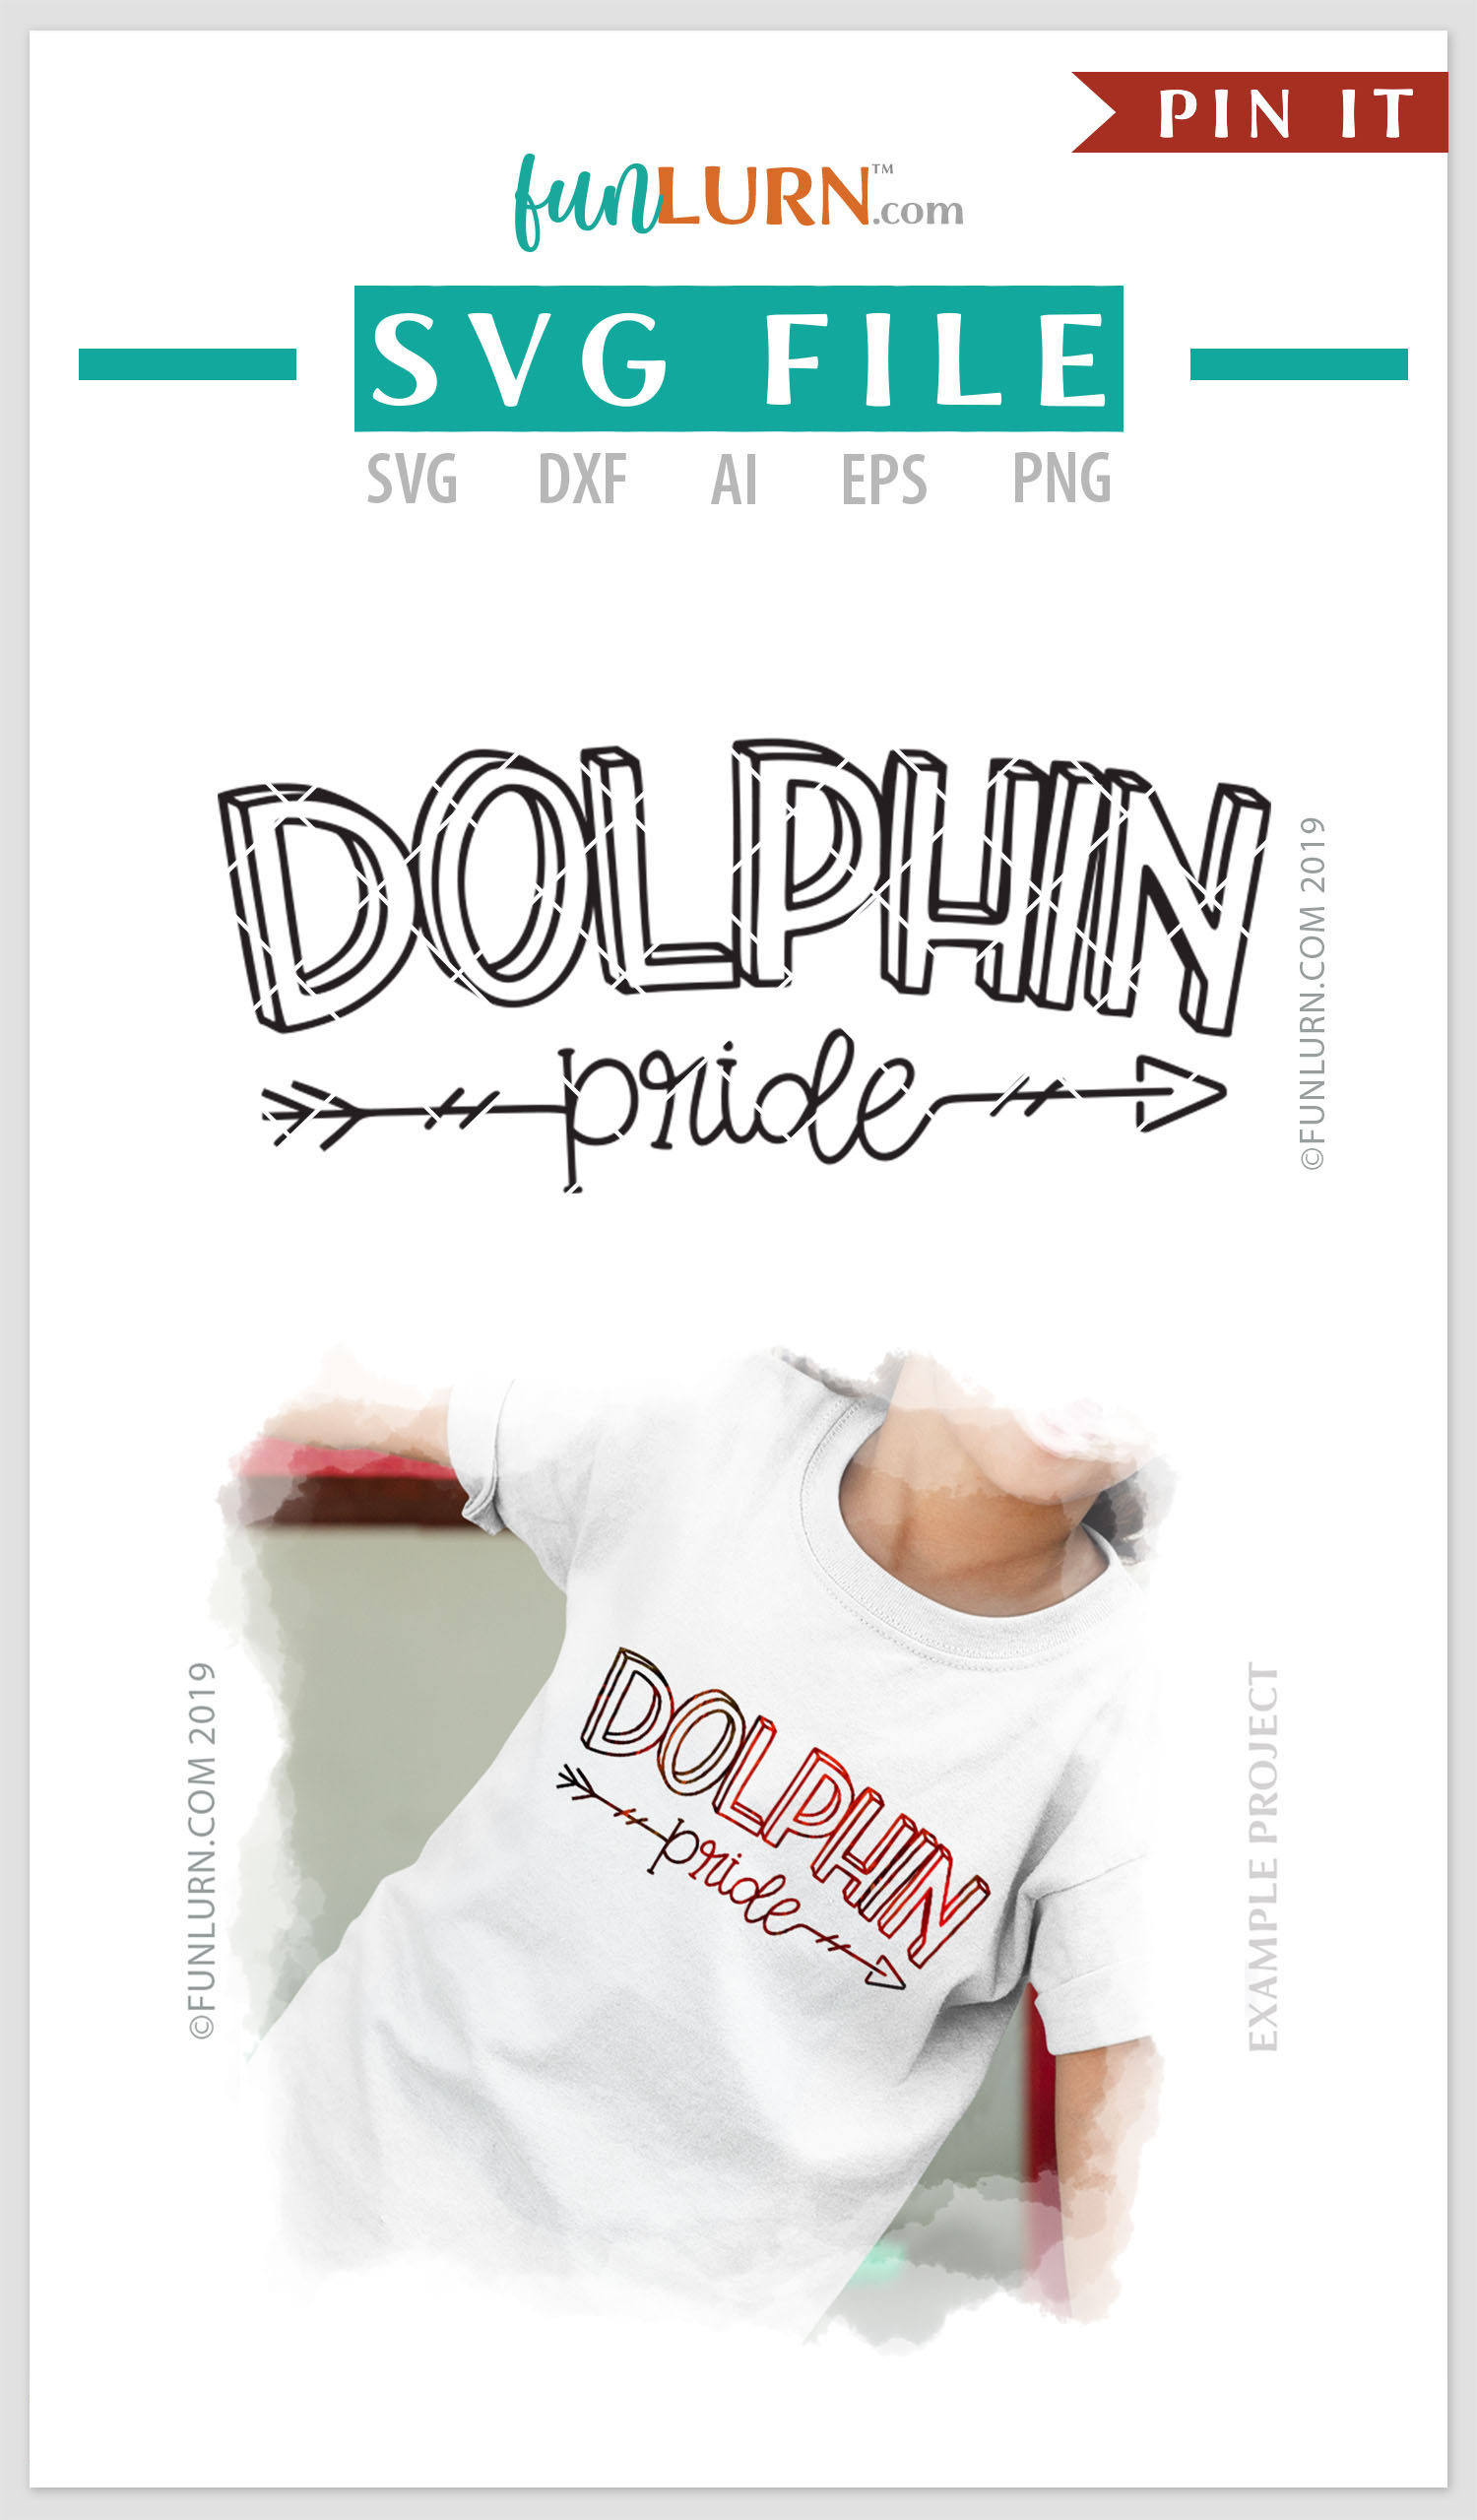 Dolphin Pride Team SVG Cut File example image 4